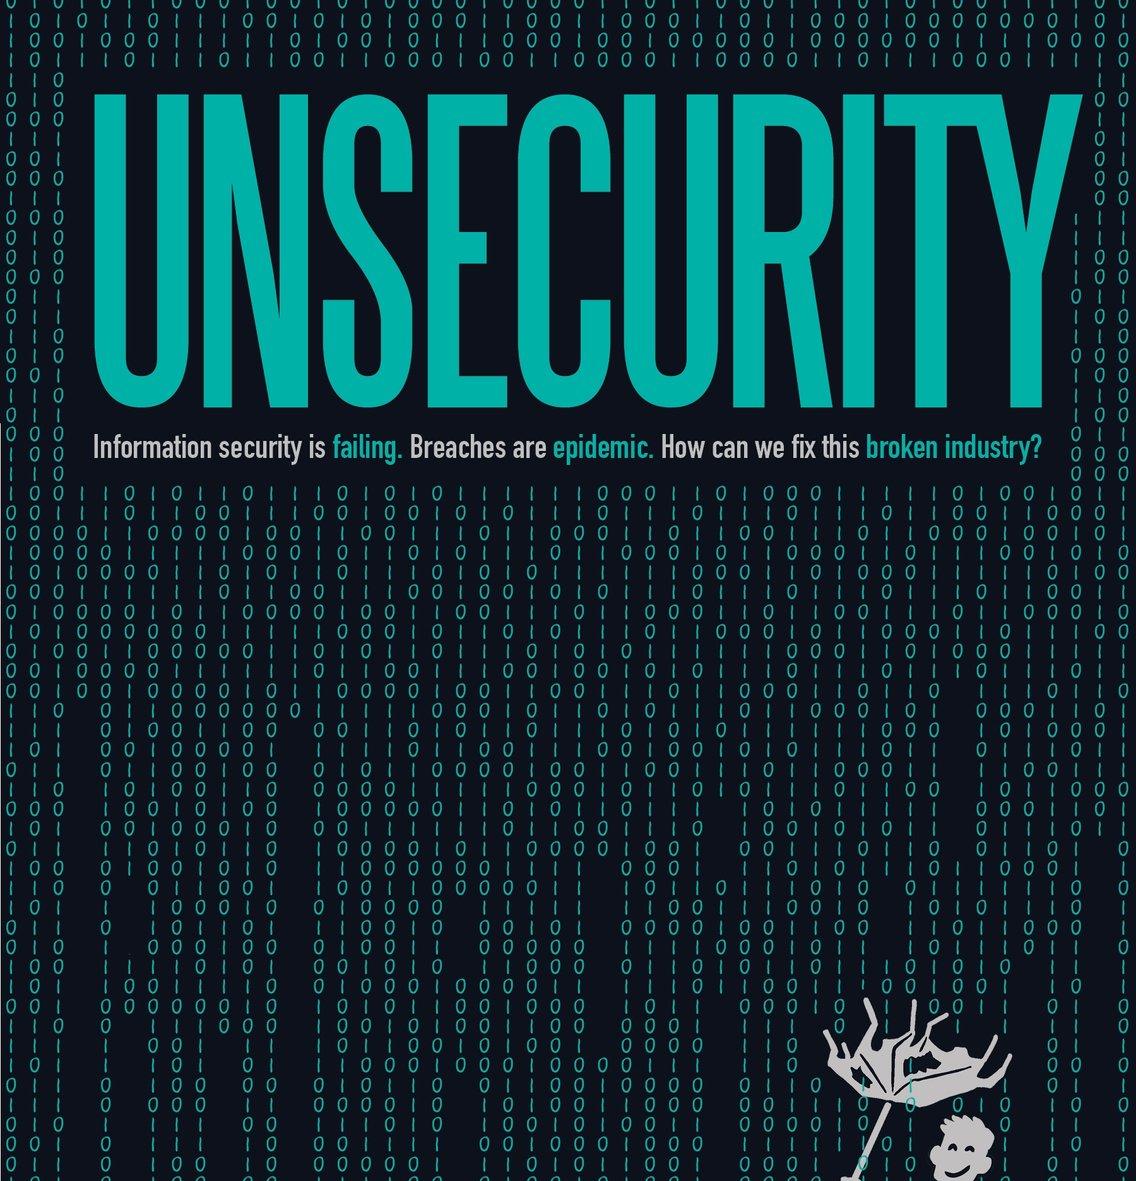 UNSECURITY: Information Security Podcast - Cover Image